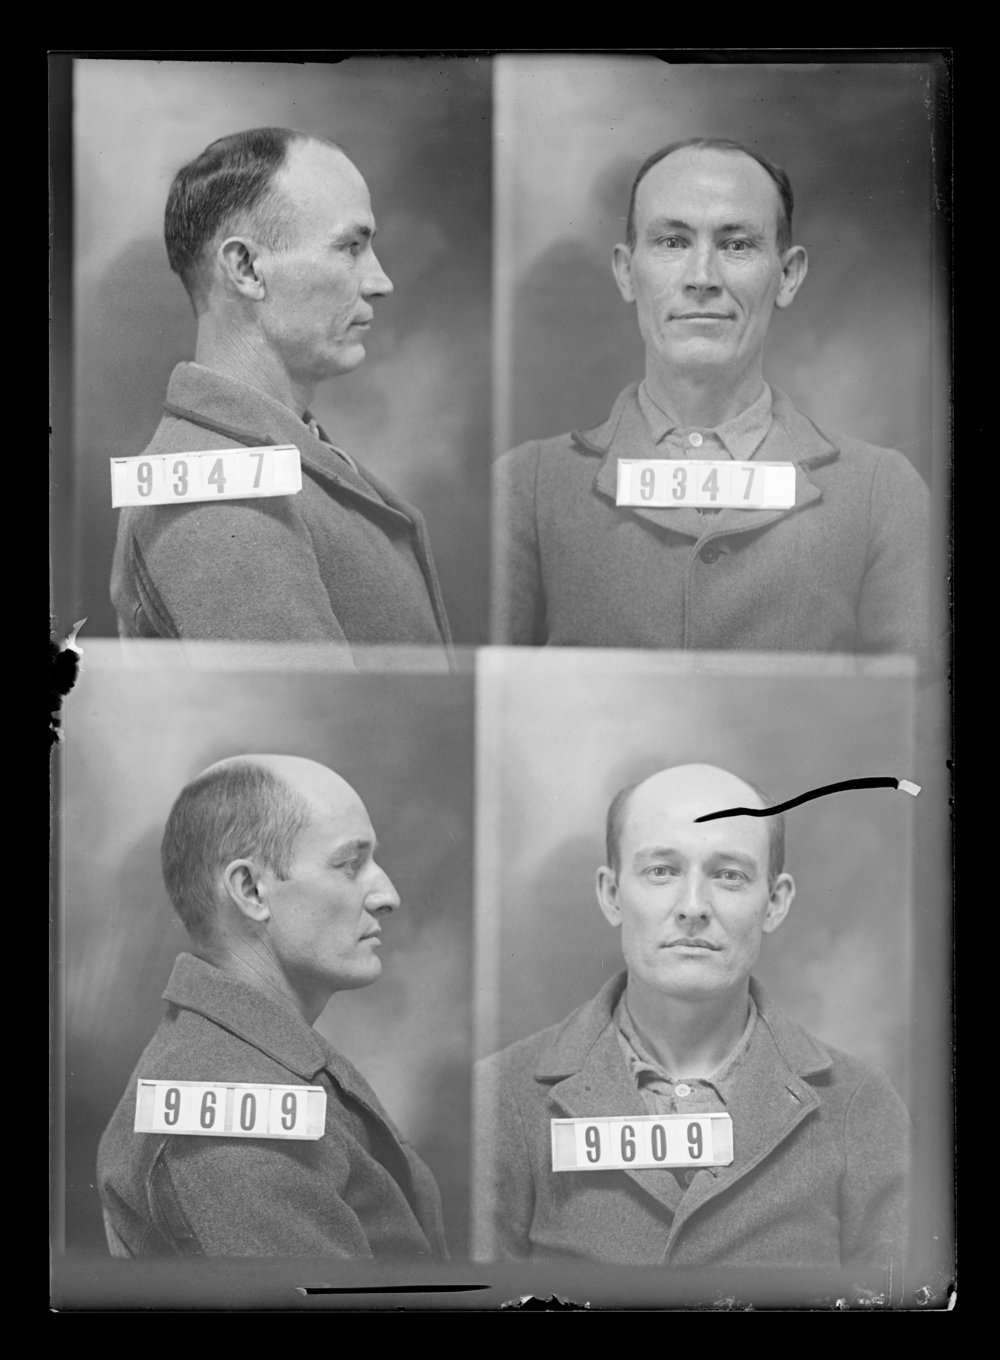 Lina A. Gray and William Tackett, prisoners 9347 and 9609